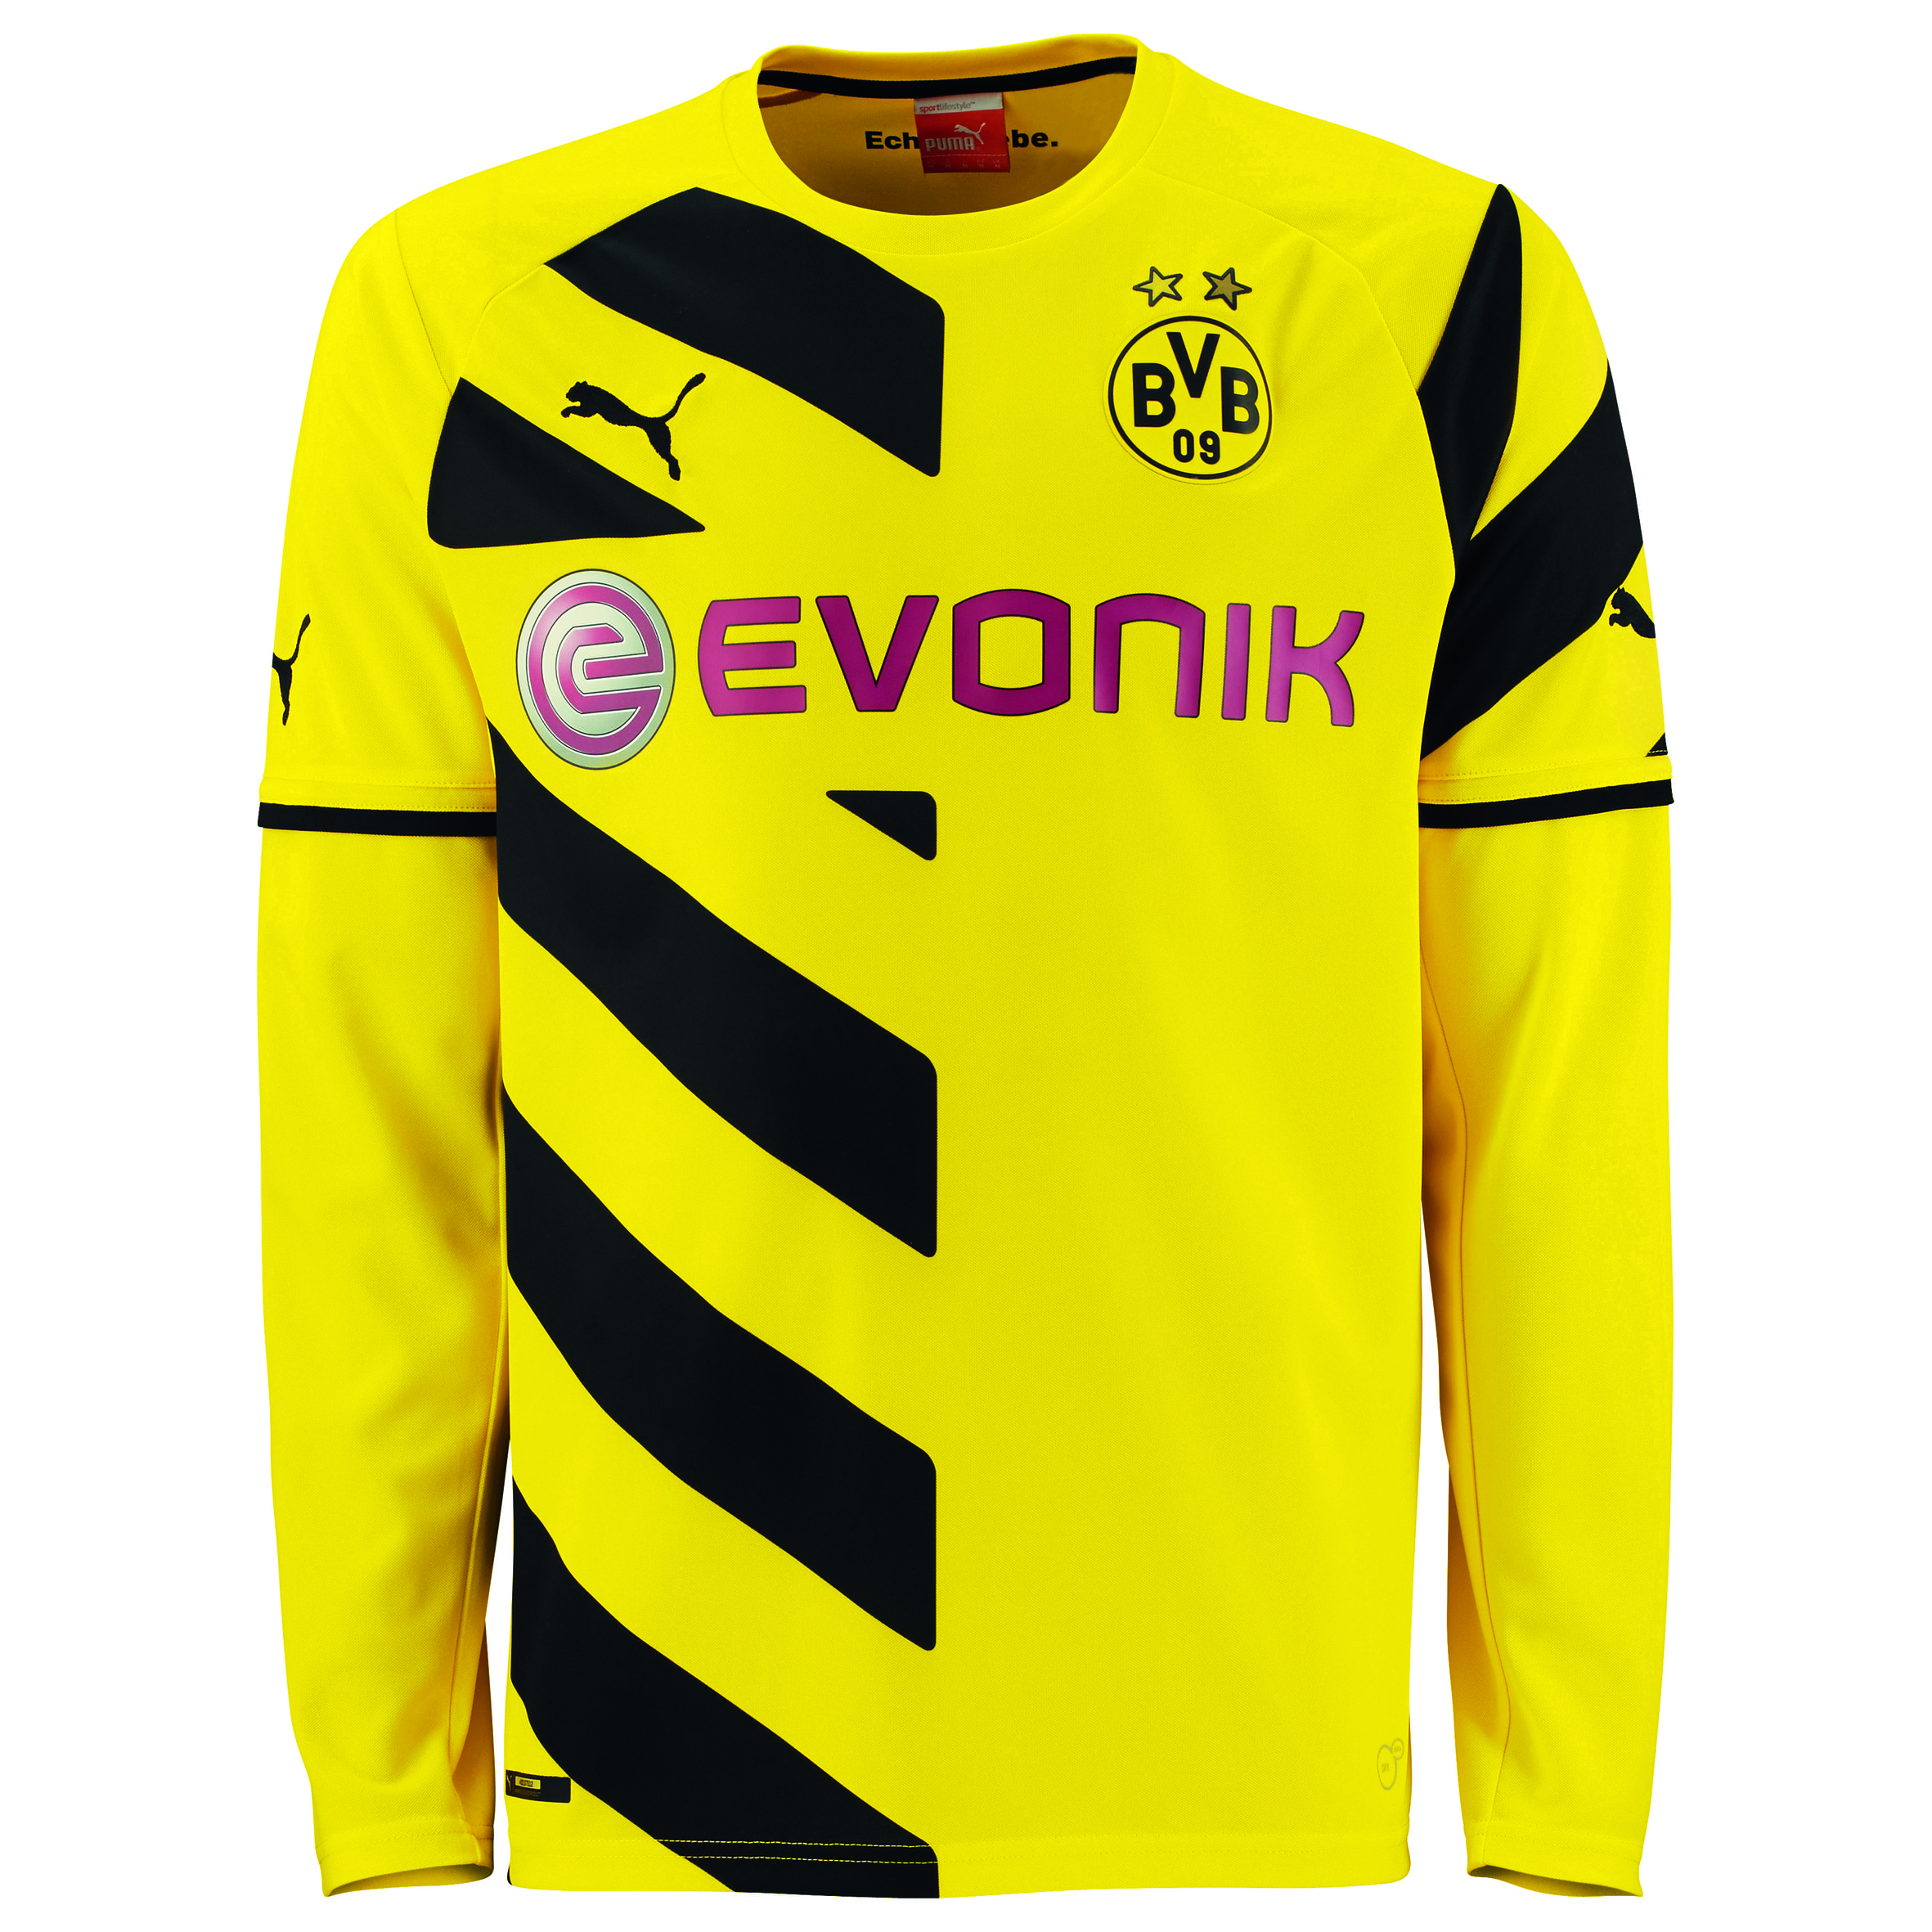 BVB Home Shirt 2014/15 - Long Sleeve - Kids Yellow